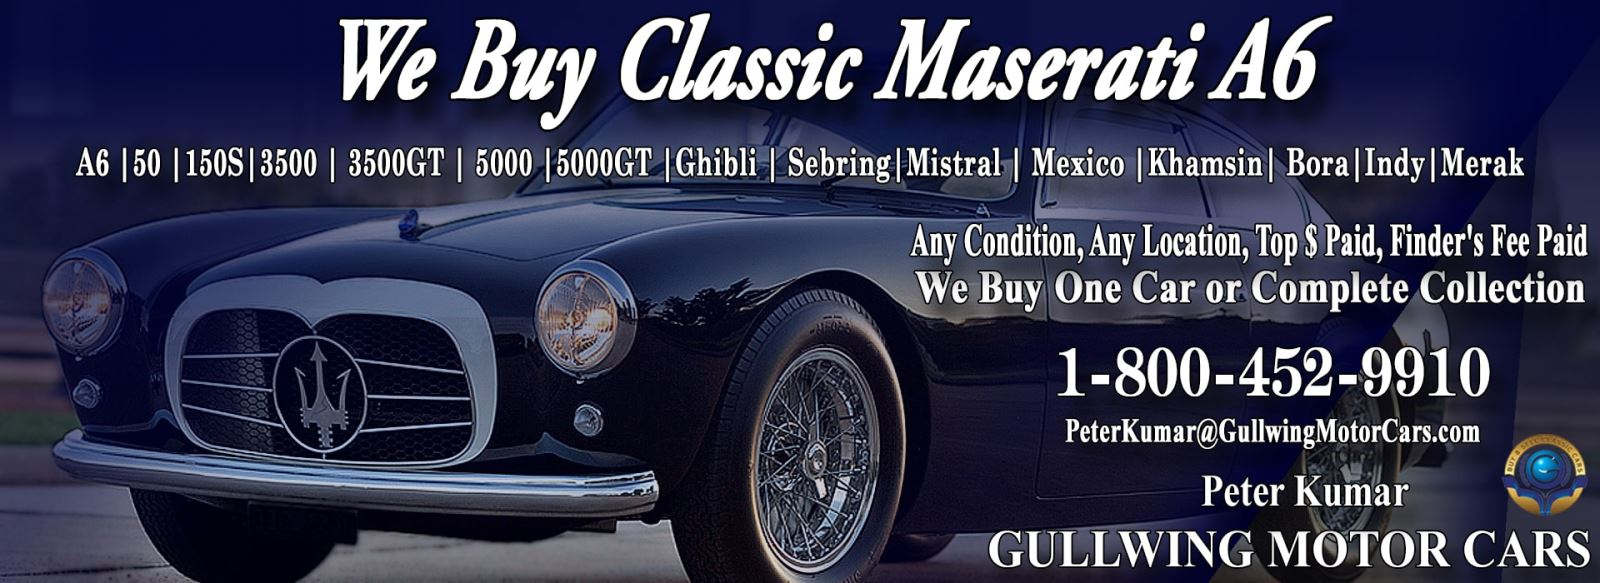 Classic Maserati A6 for sale, we buy vintage Maserati A6. Call Peter Kumar. Gullwing Motor